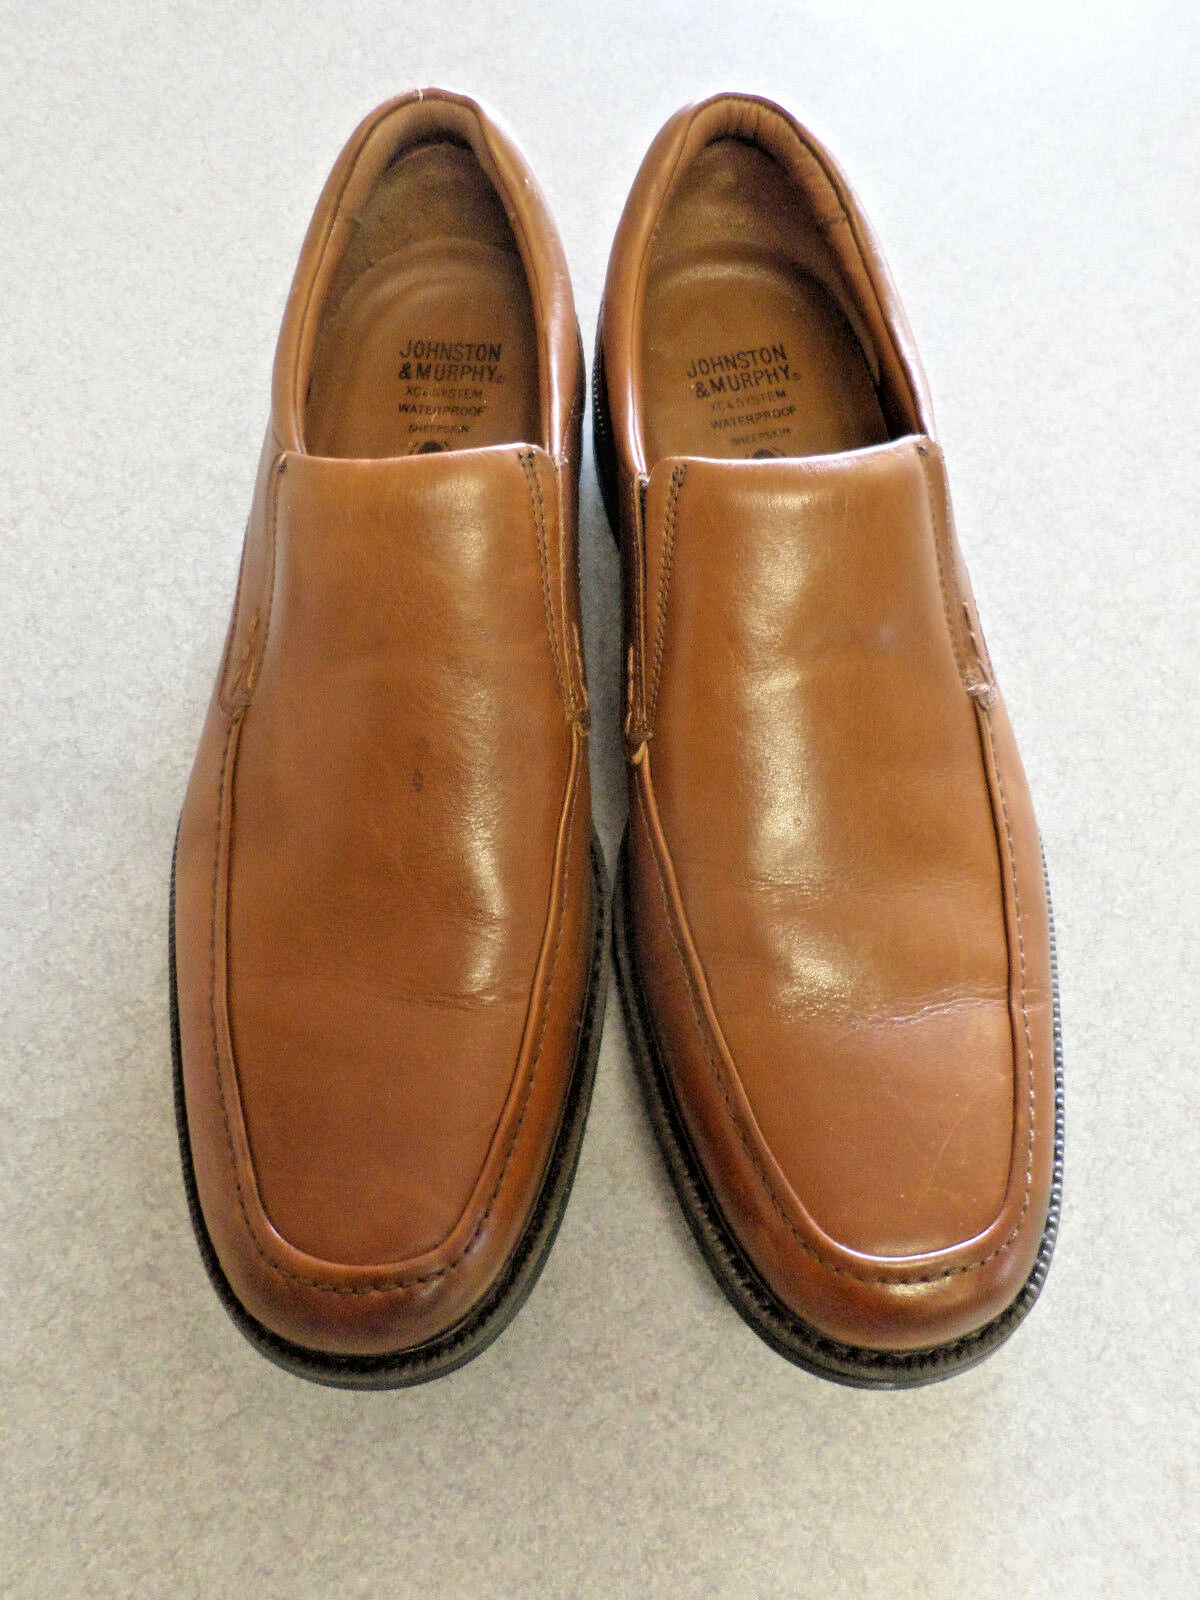 Johnston & Murphy  XC4  Brown Leather, Sheepskin Lined, Loafers. Men's 10.5 M